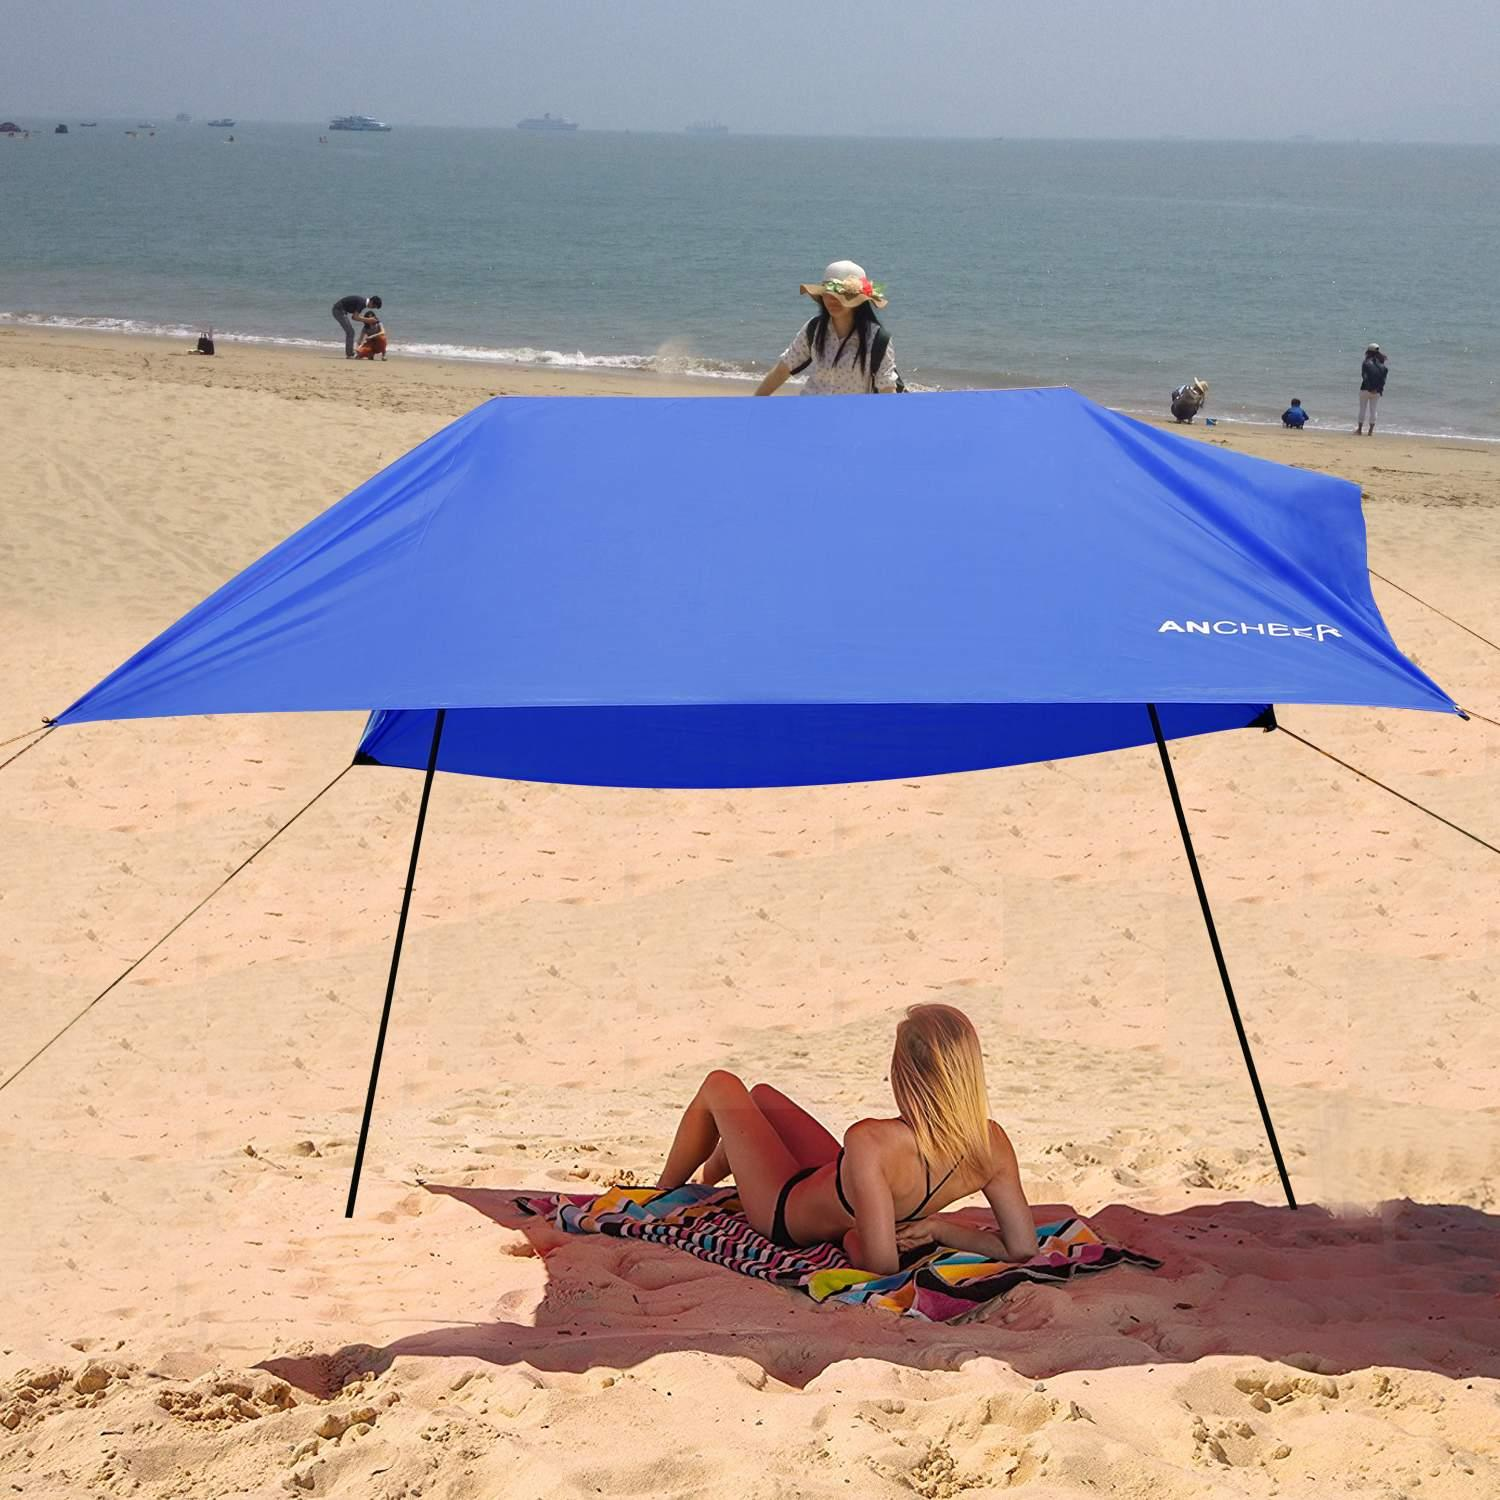 Portable 9.8 x 9.8ft Lightweight Beach Tent Outdoor Canopy SunShade Sun Shelter Folding shelter HPPY by